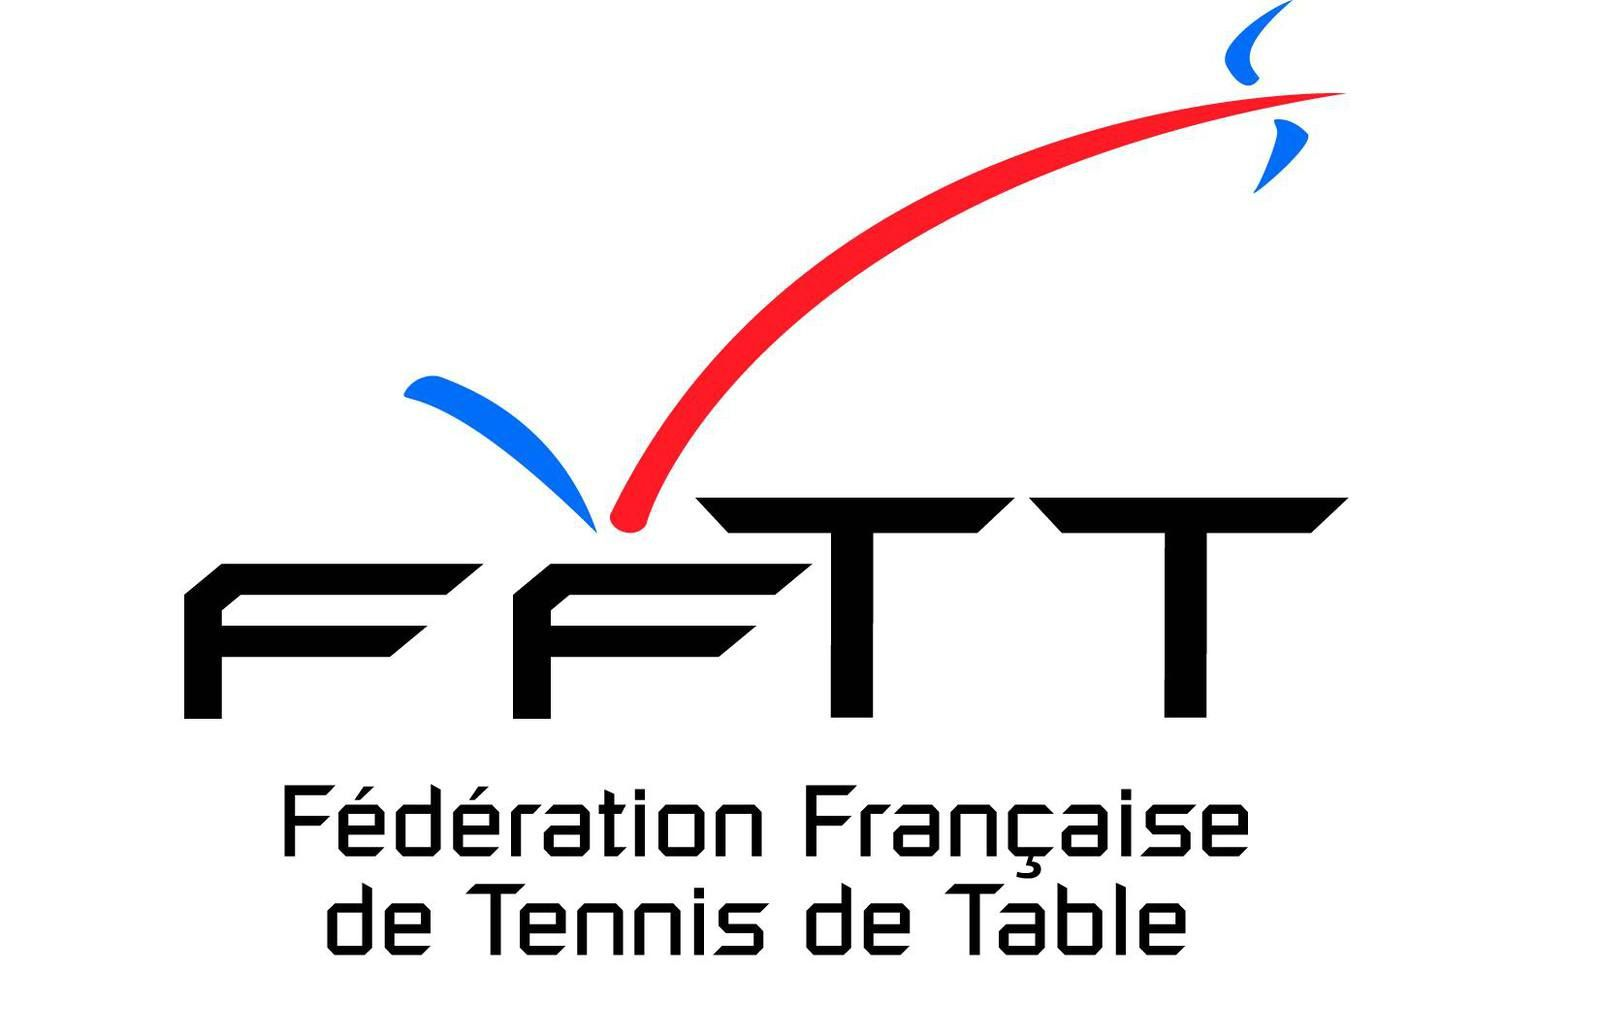 Tennis de table le blog de tennis de table amiens - Grand quevilly tennis de table ...